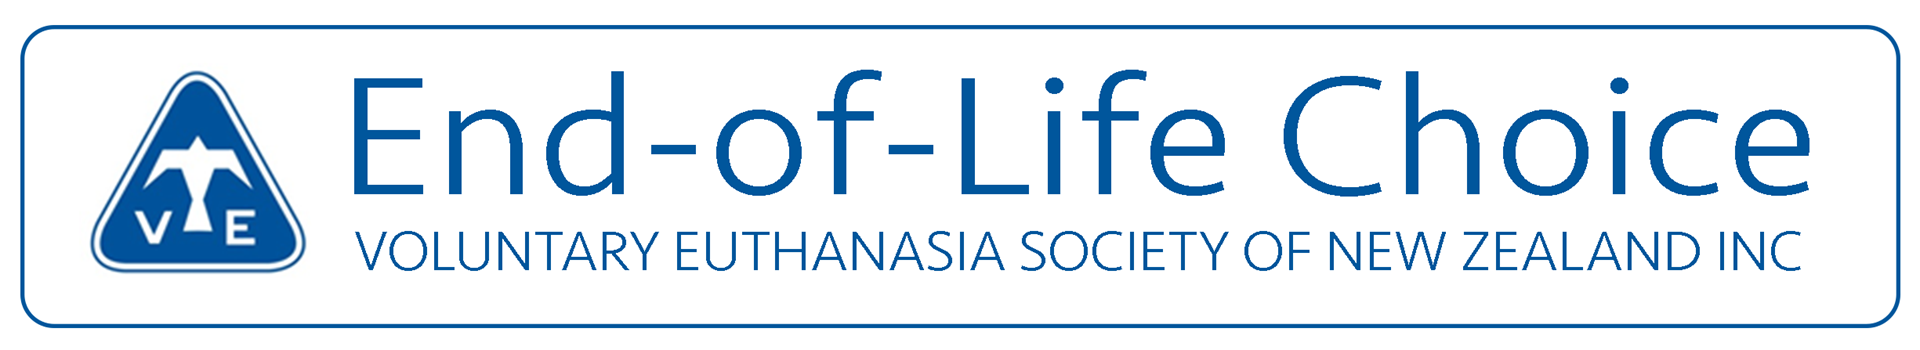 End-of-Life Choice - VOLUNTARY EUTHANASIA SOCIETY OF NEW ZEALAND INC